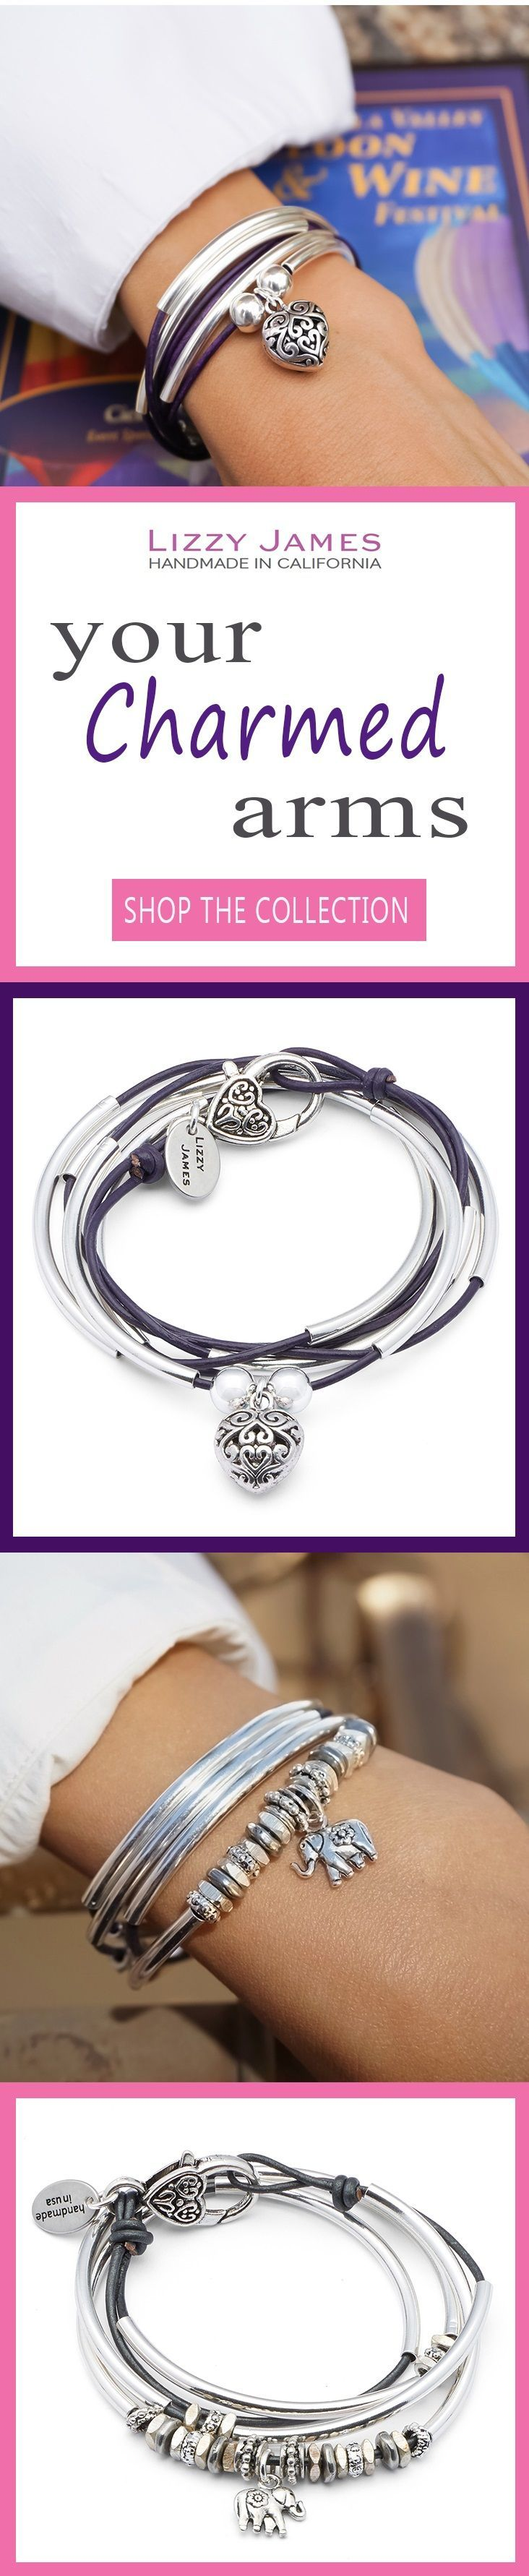 Design your own photo charms compatible with your pandora bracelets. NEW Fall 2016 styles! FREE Shipping on USPS orders plus 15% OFF for all 1st time buyers, let Lizzy James Jewelry help you Fall into Style this Season! Featuring leather & cotton cord wrap bracelets that can also be worn as necklaces, our designs fit all wrist sizes from petite to plus size. Proud to be made in the USA! #lizzyjames